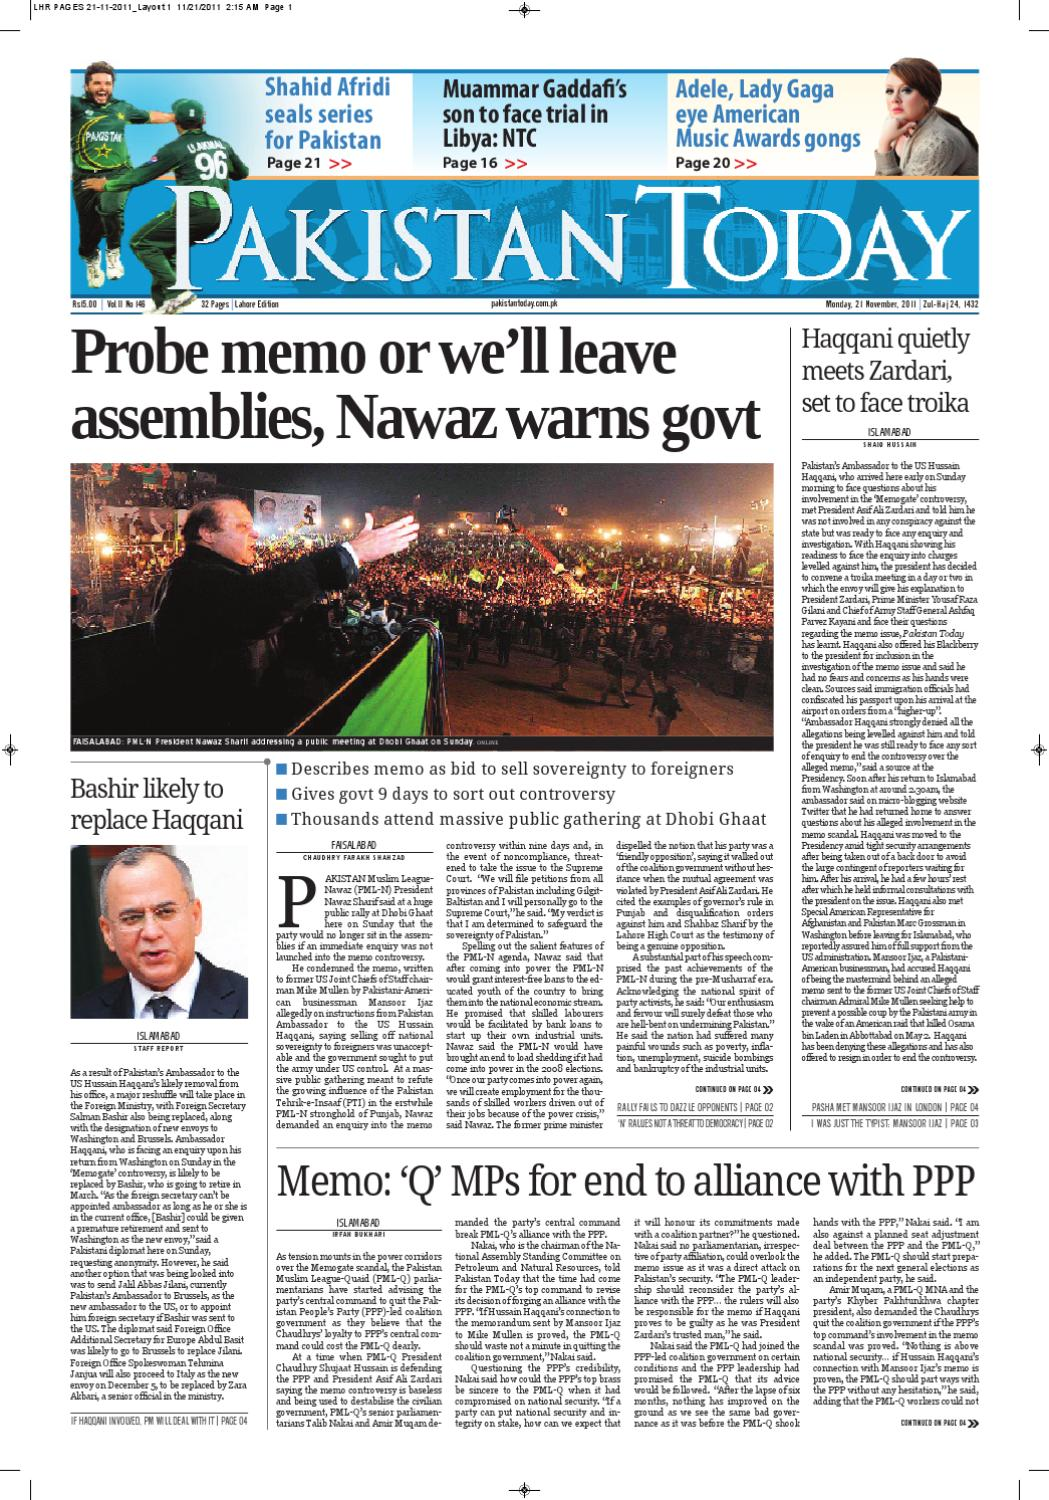 E-paper Pakistantoday Lahore 21th Nov 2011 by Pakistan Today - issuu